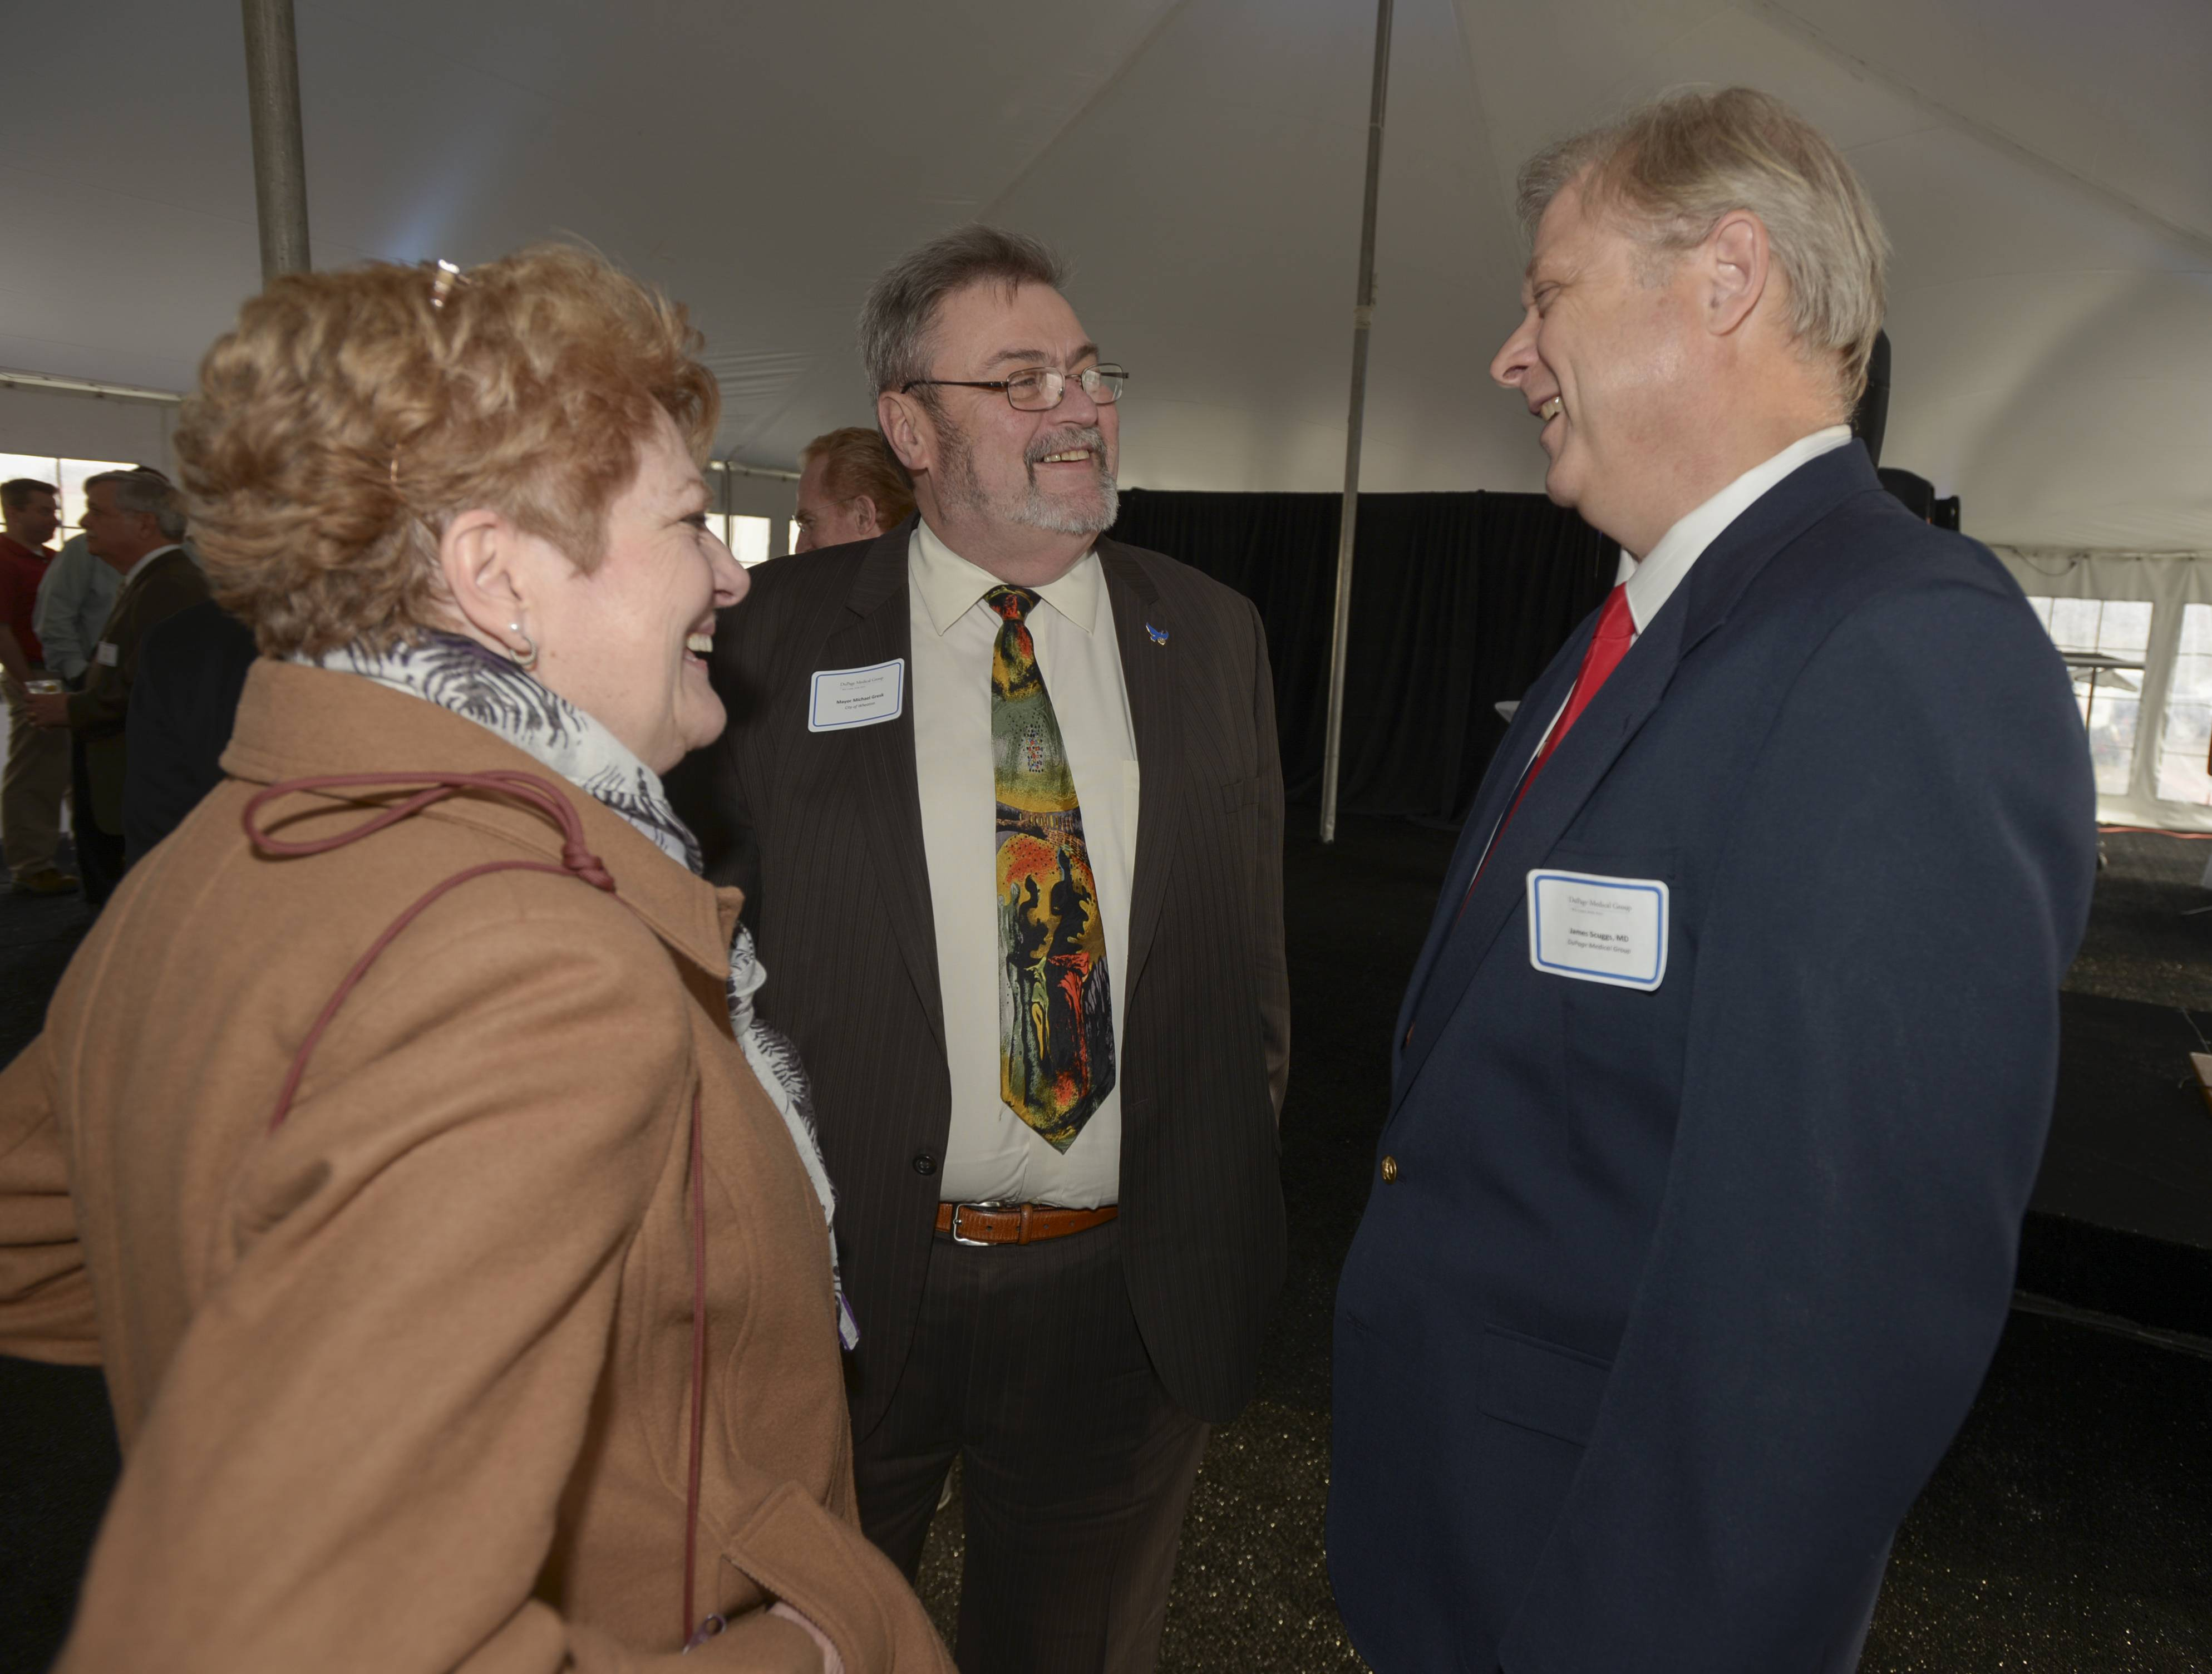 Kathleen Gresk and her husband Wheaton Mayor Mike Gresk talk with Dr. James Scugges before the ribbon cutting ceremony for the new DuPage Medical Group Building in Wheaton.